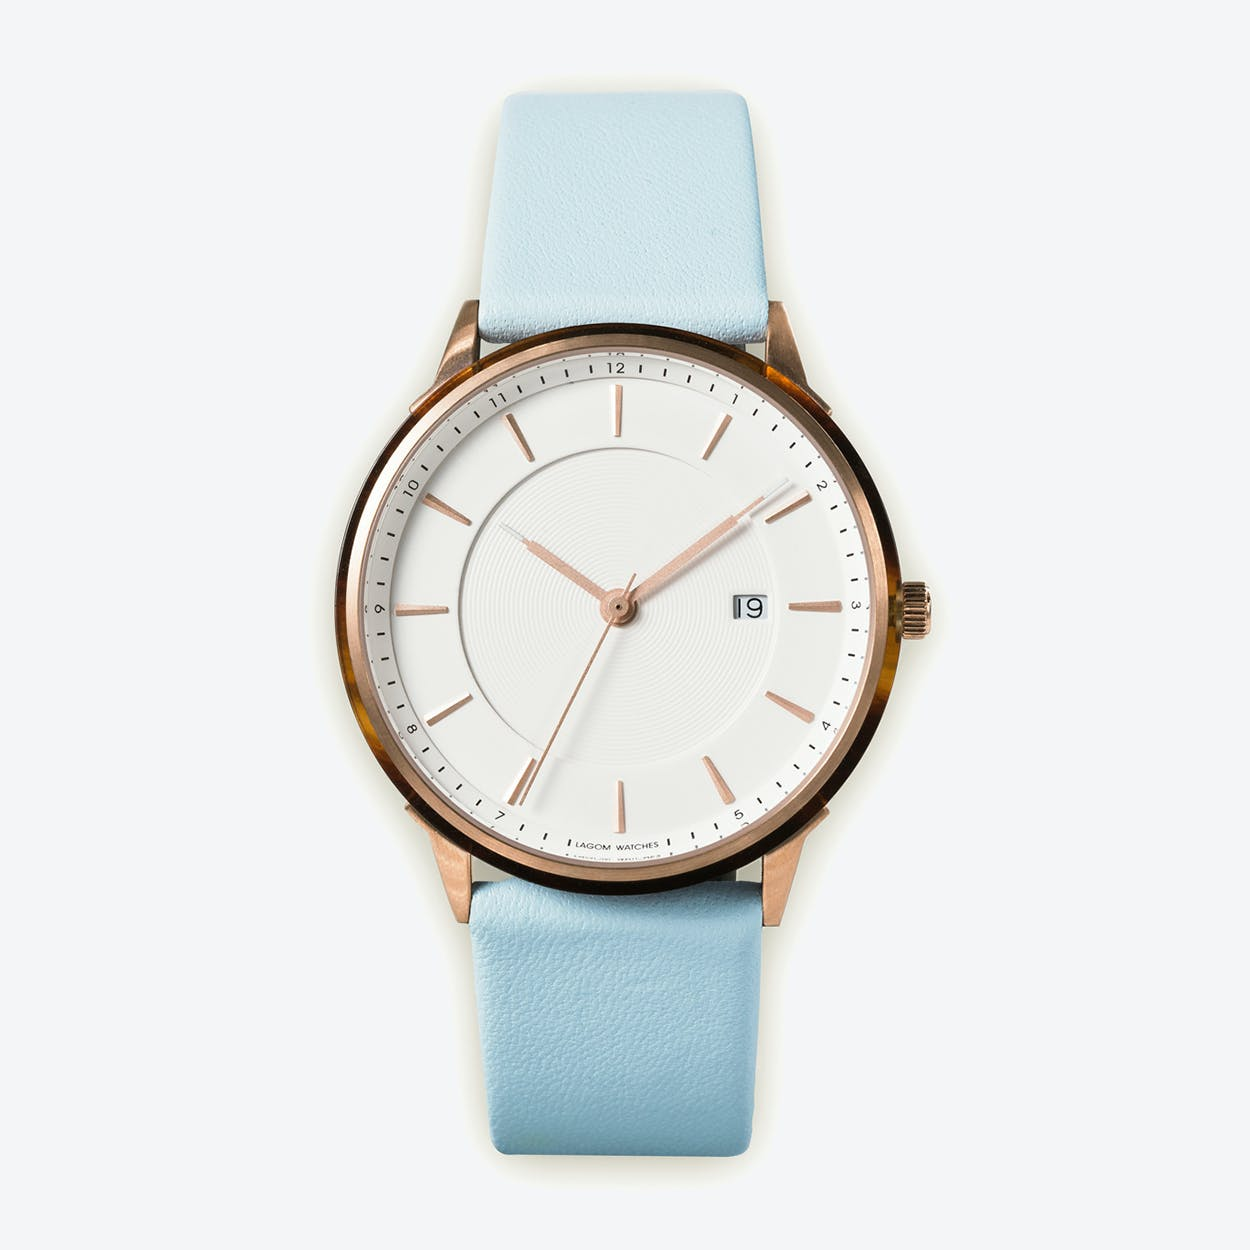 BÖRJA - Rose Gold Watch in Offwhite Face and Pale Blue Leather Strap